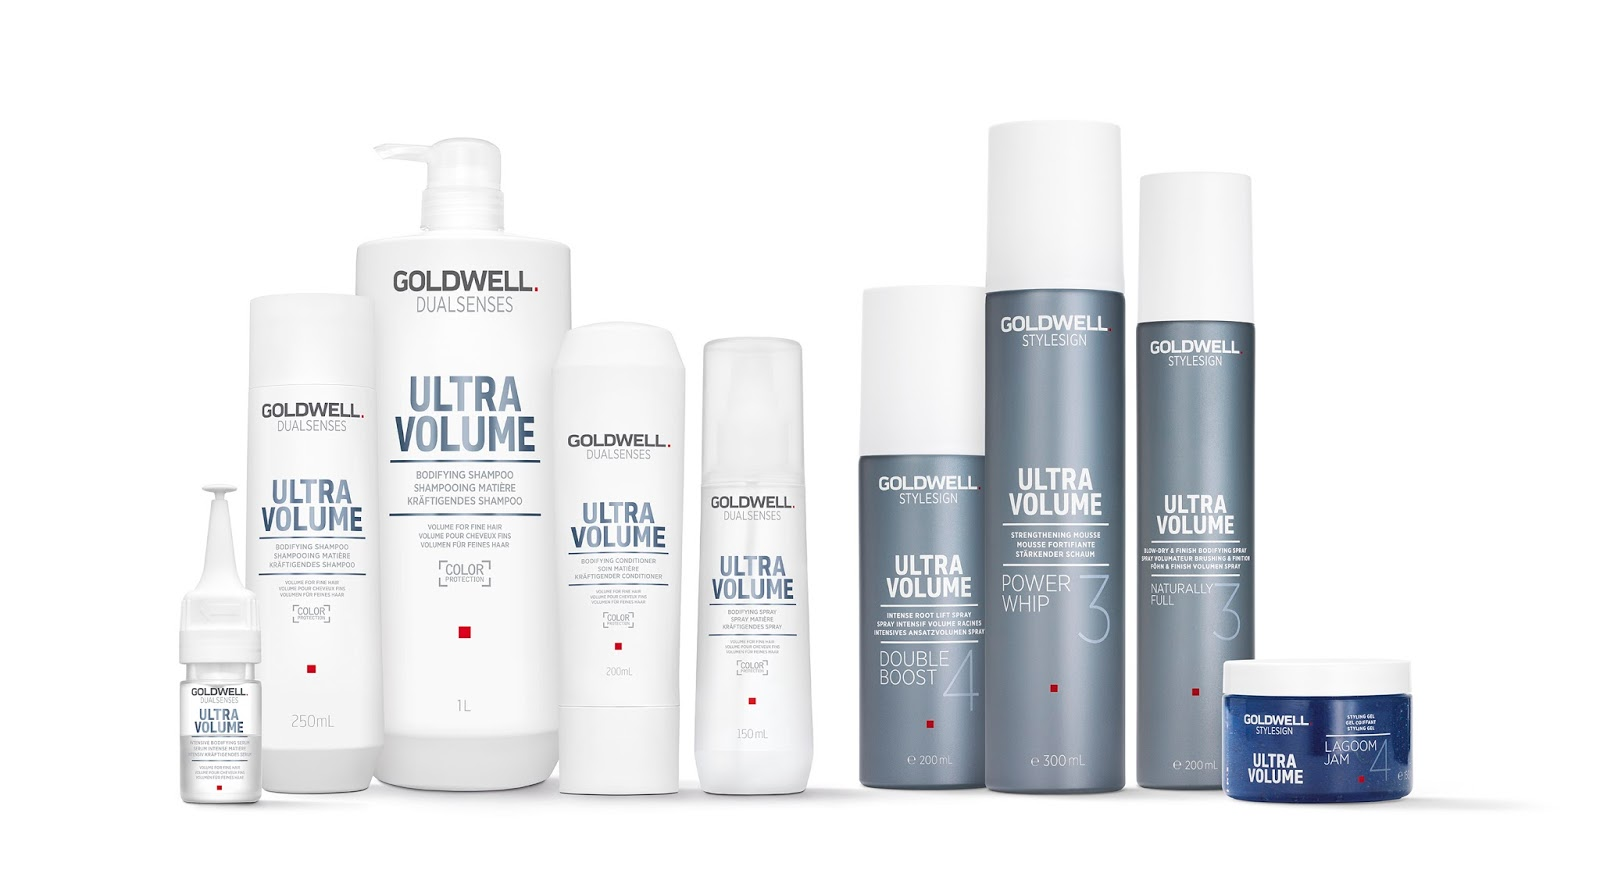 goldwell dualsenses and stylesign on packaging of the world